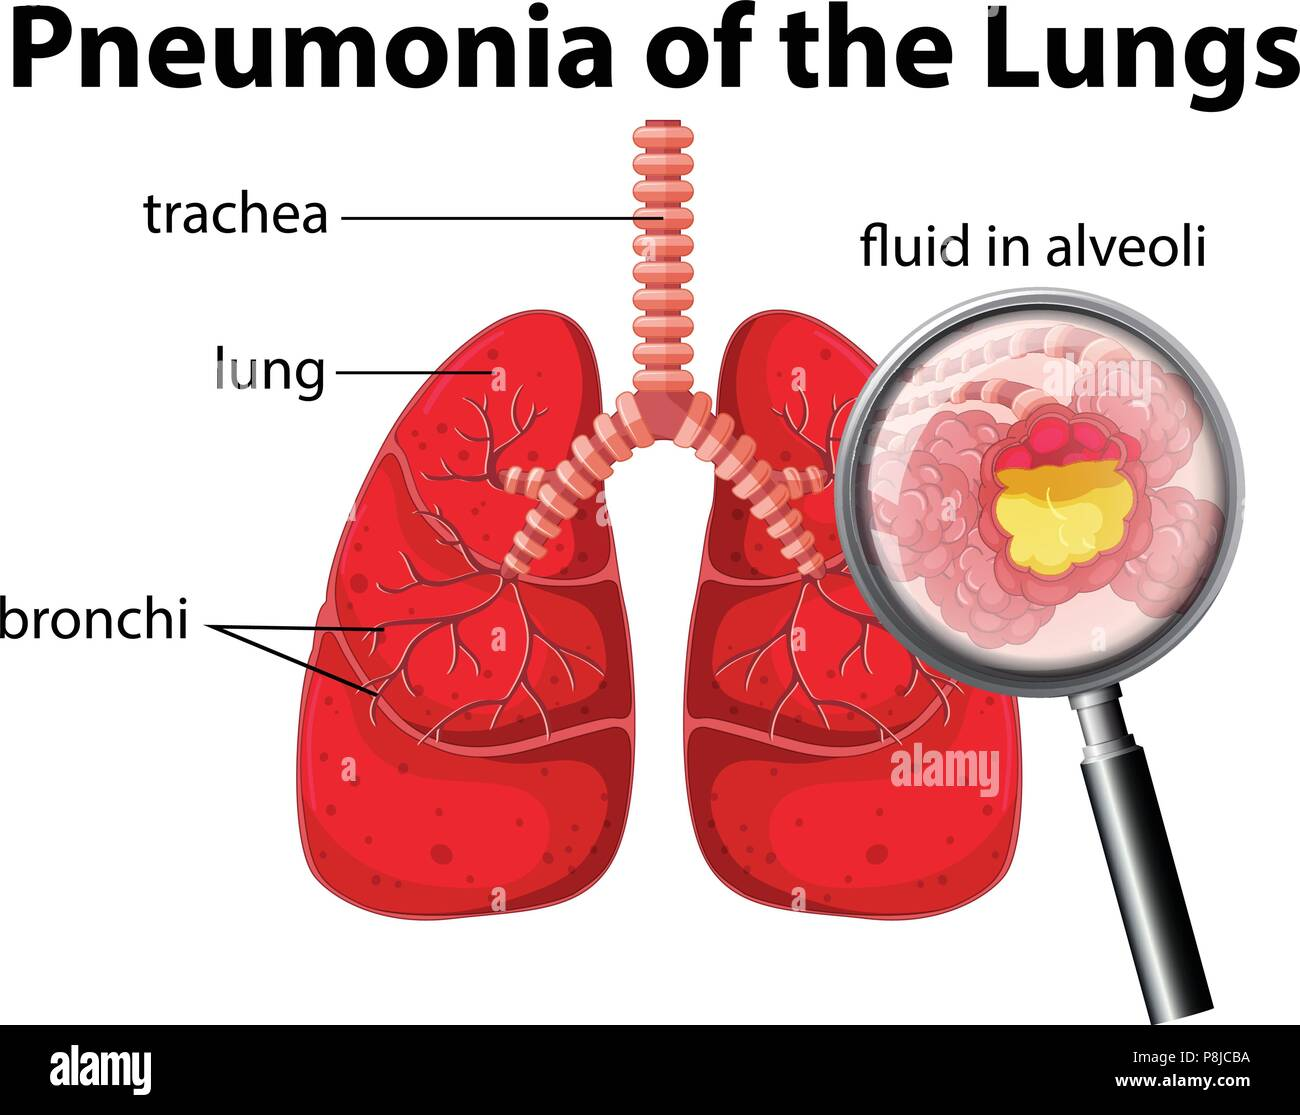 Pneumonia of the Lungs Diagram illustration - Stock Image